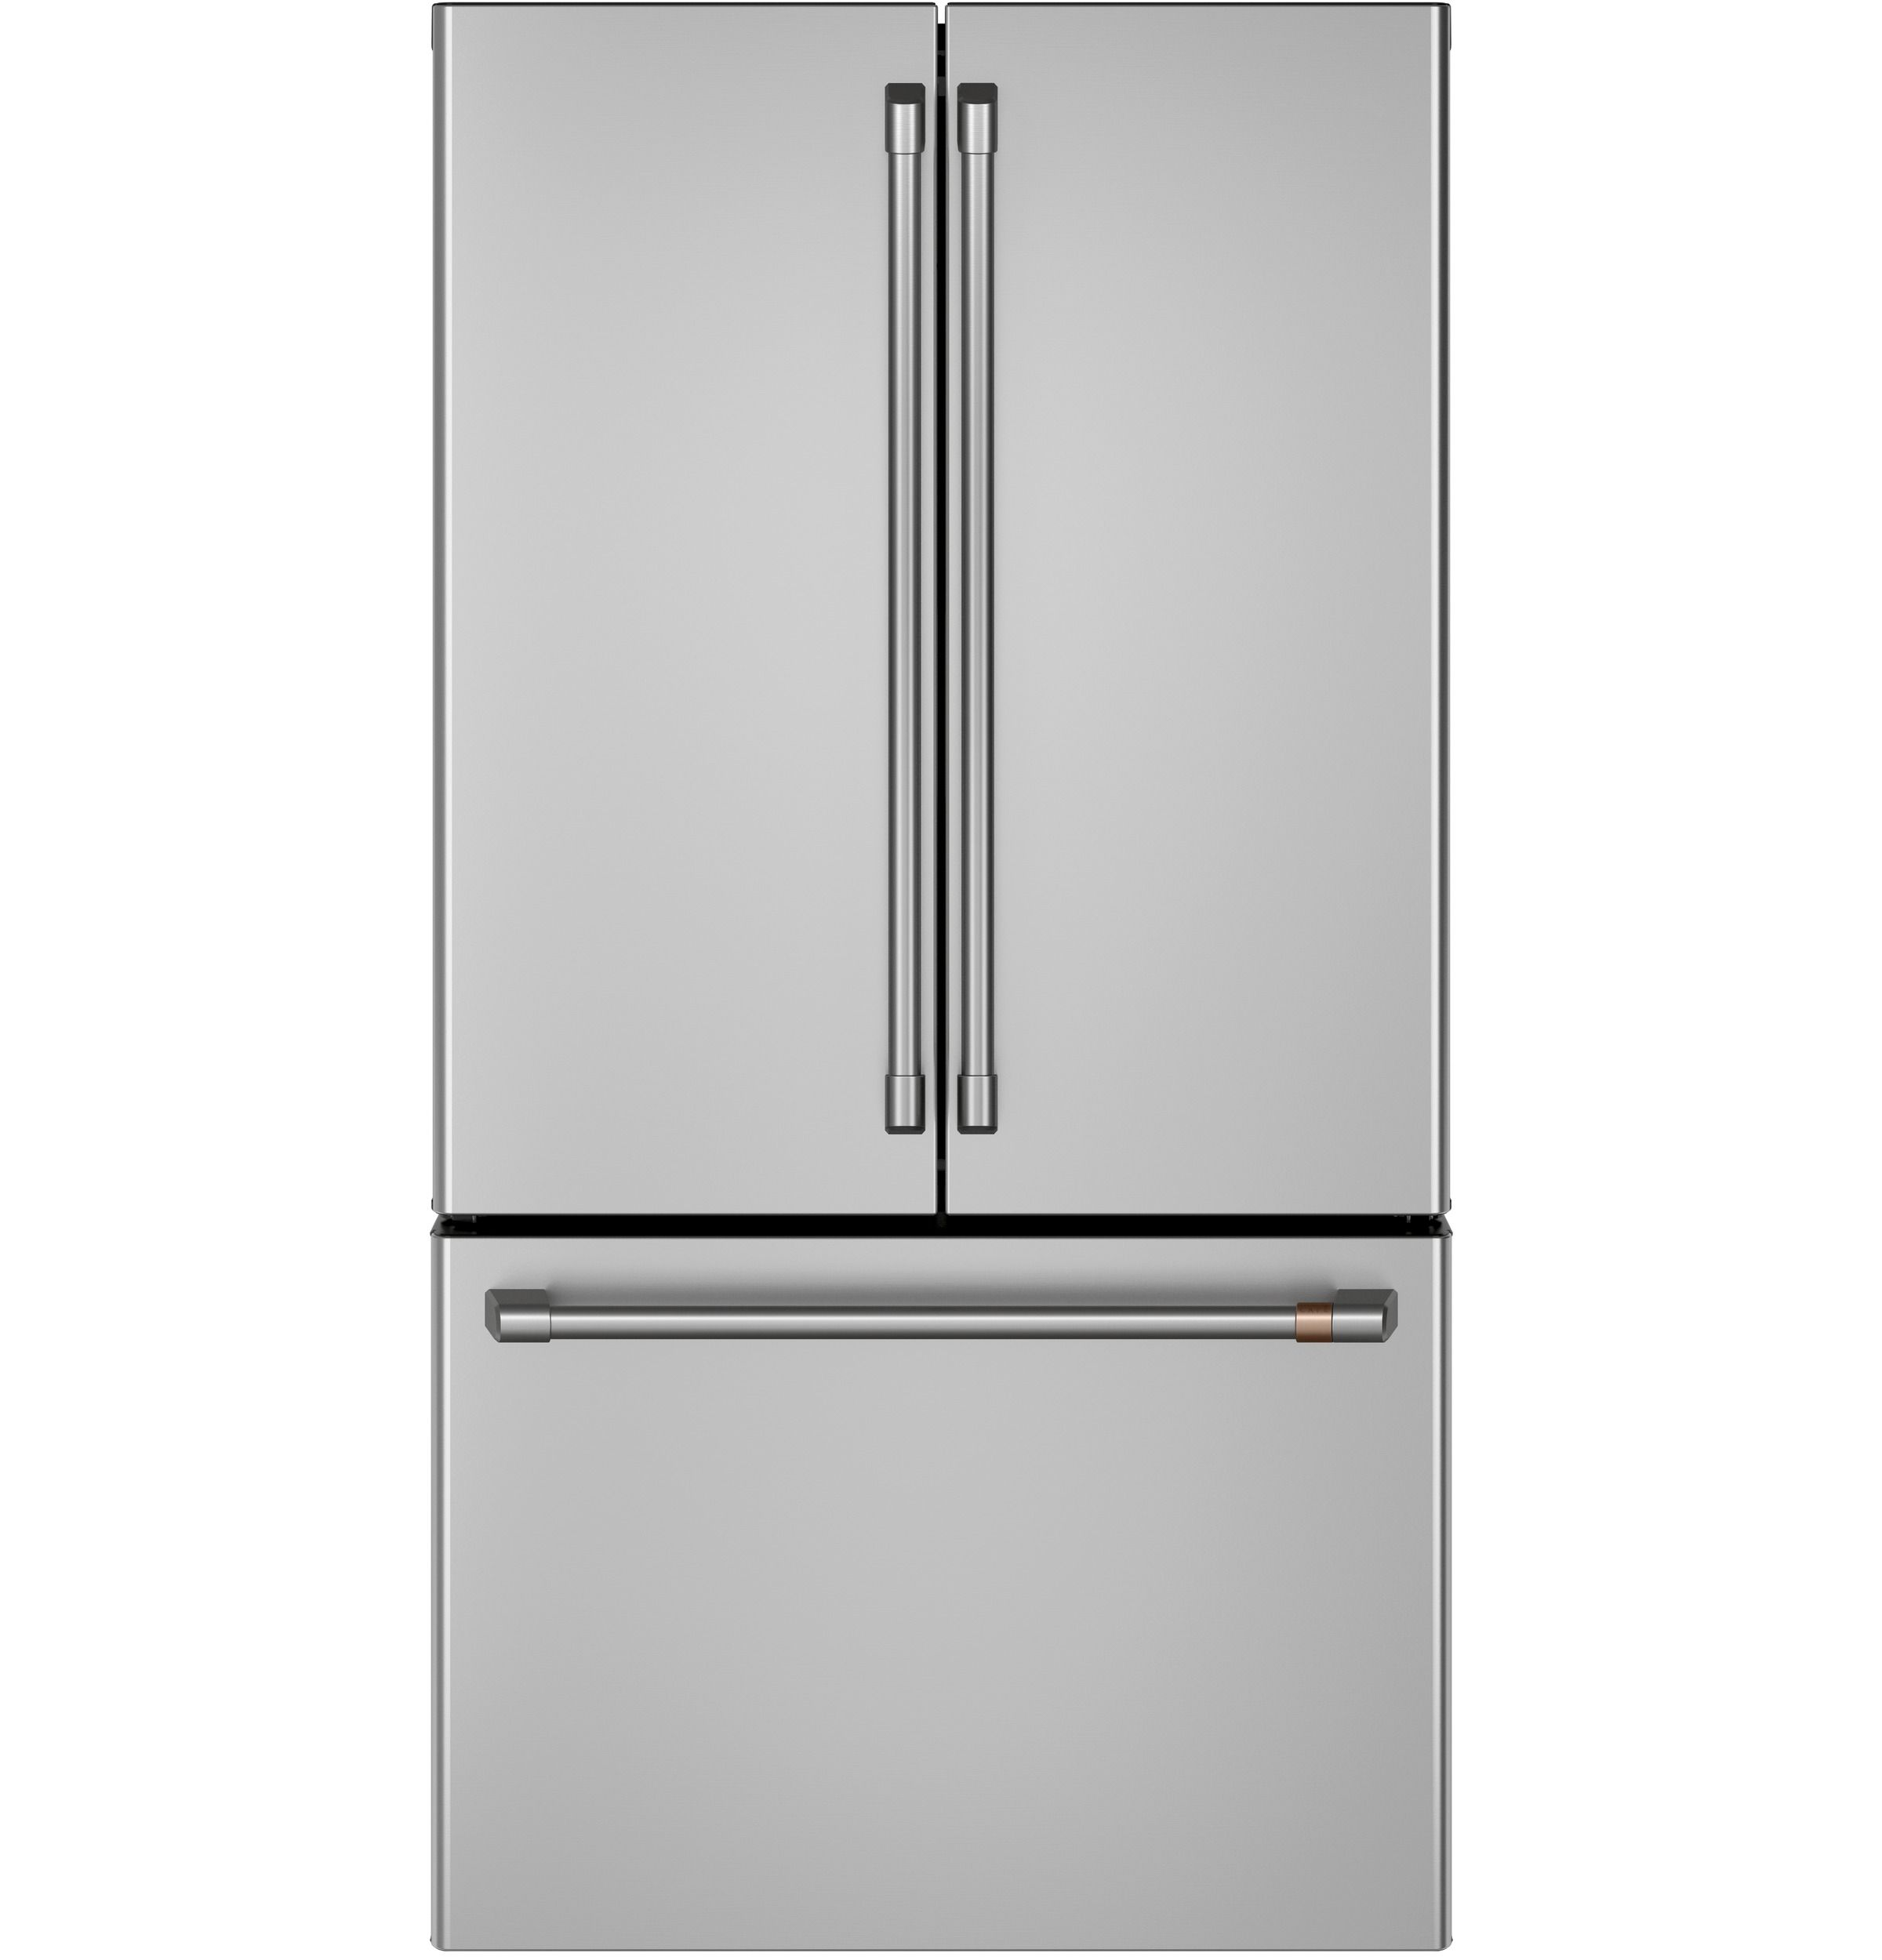 Cwe23sp2ms1 Overview Cafe Energy Star 23 1 Cu Ft Smart Counter Depth French Door Refrigerator In 2020 With Images Copper Kitchen Decor French Door Refrigerator Refrigerator